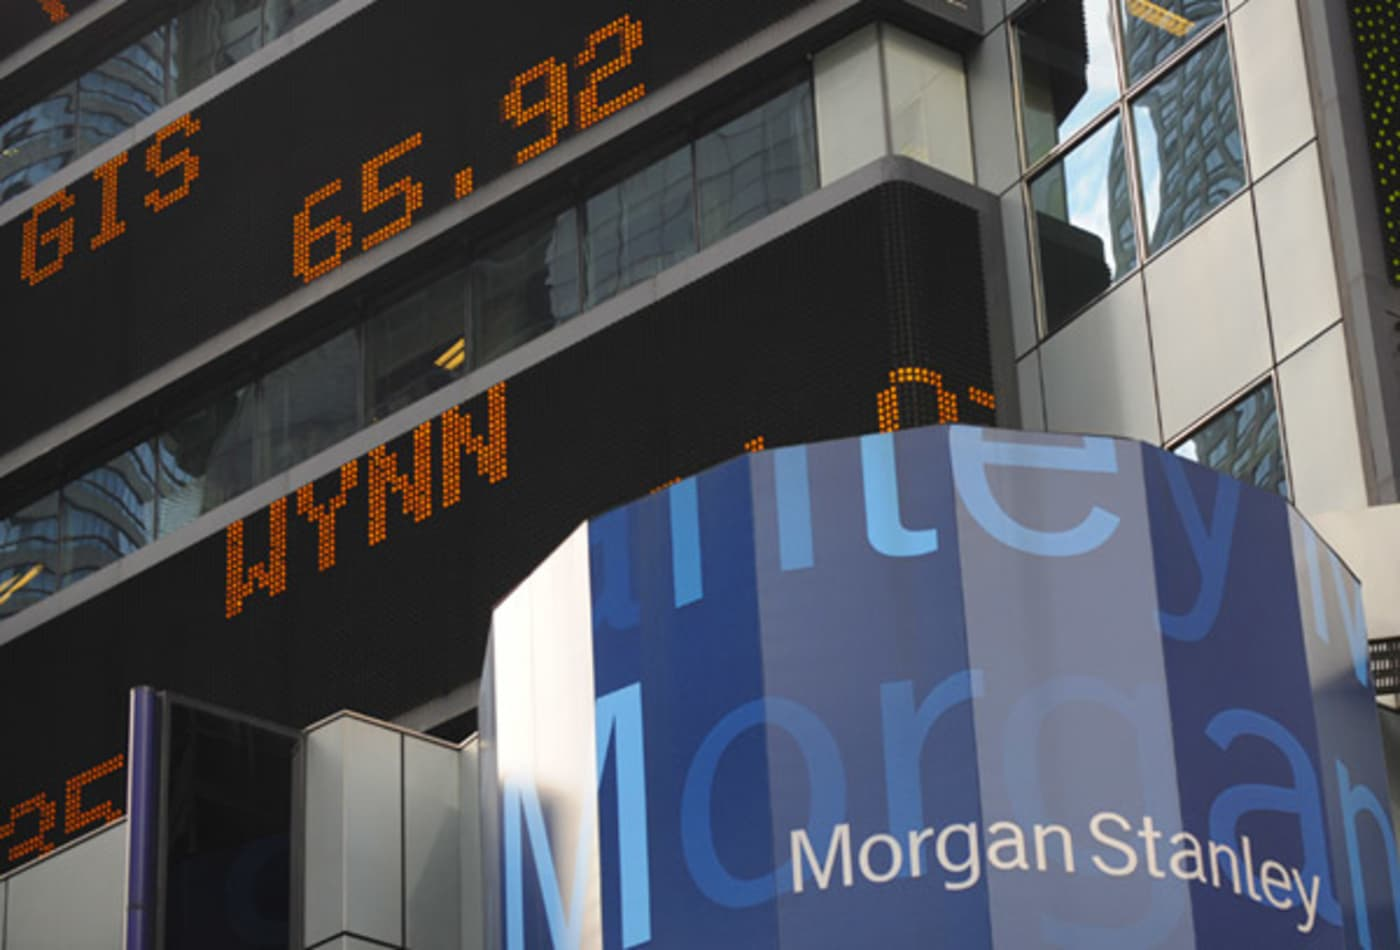 20-stocks-with-the-potential-to-pop-0312-morgan-stanely.jpg